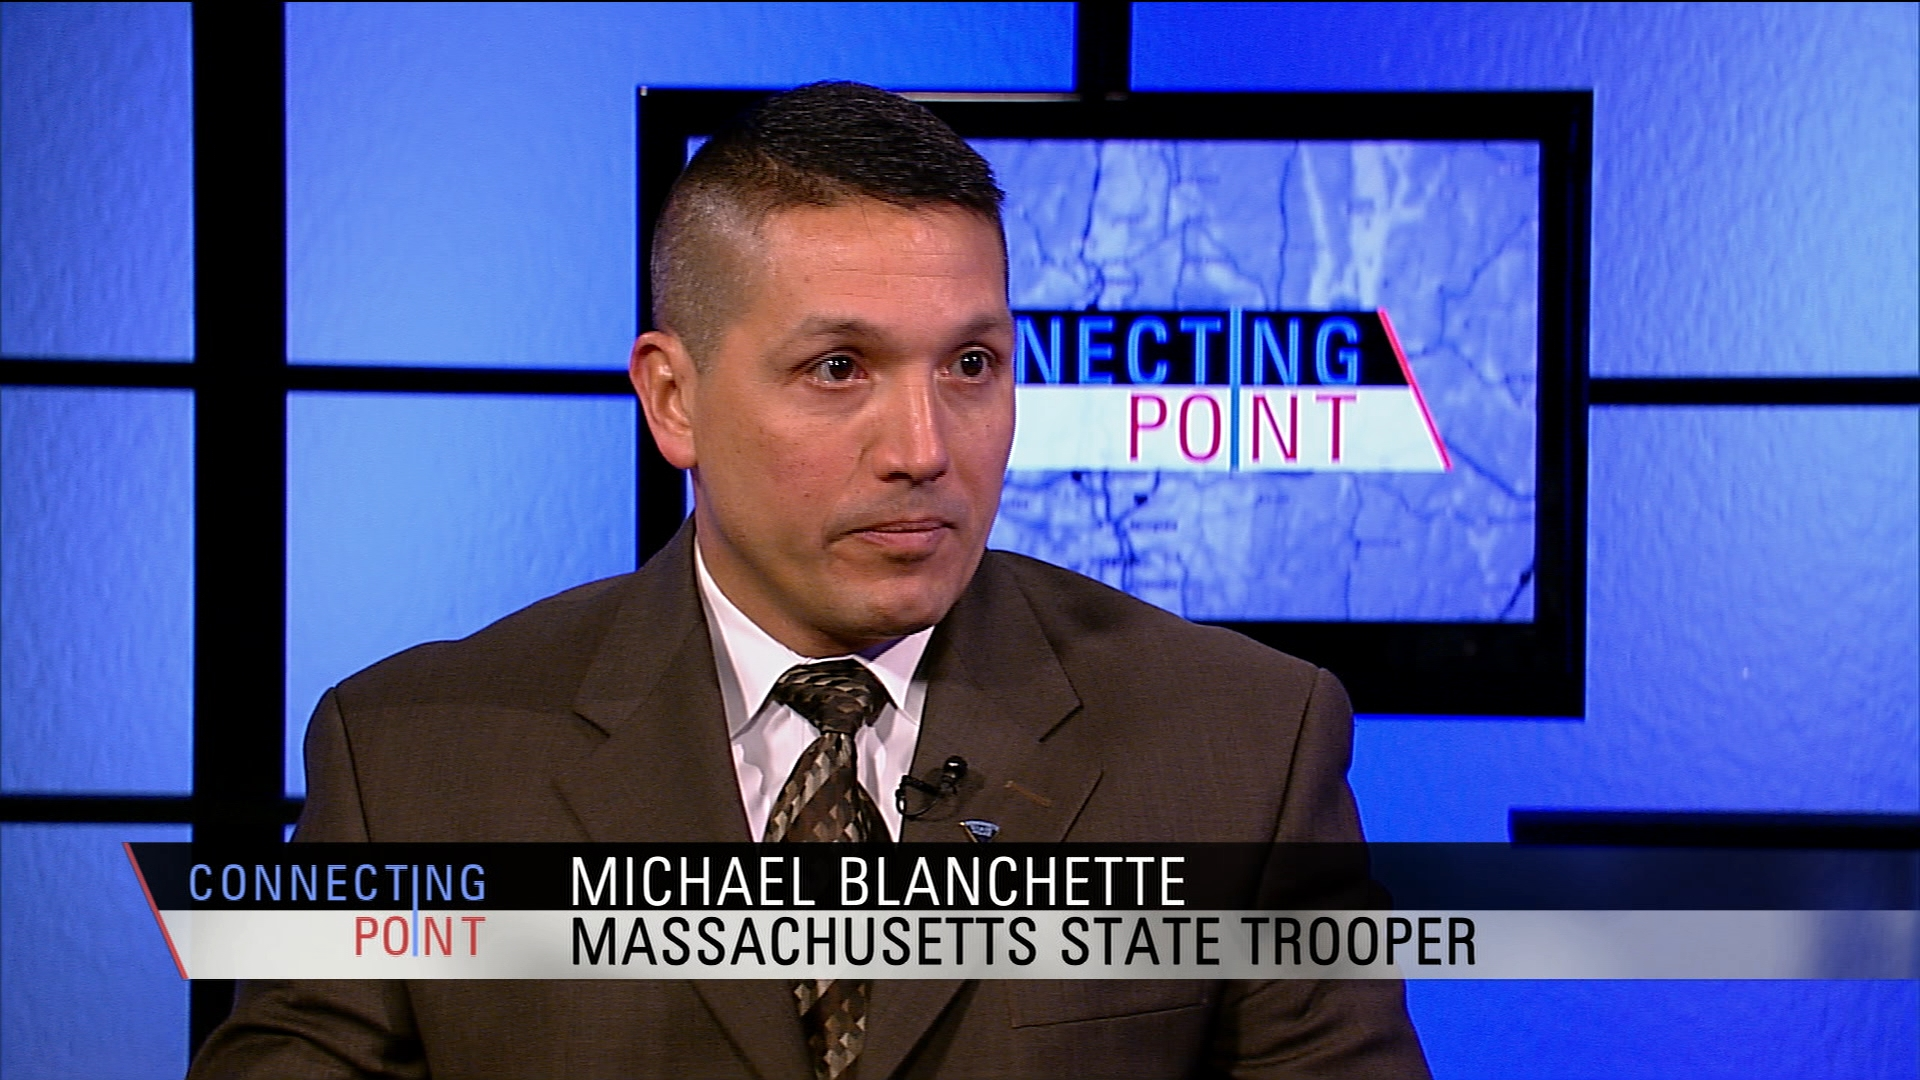 MA State Trooper Michael Blanchette discusses the dangers of unsupervised cell phone usage and how parents can encourage cell phone safety.